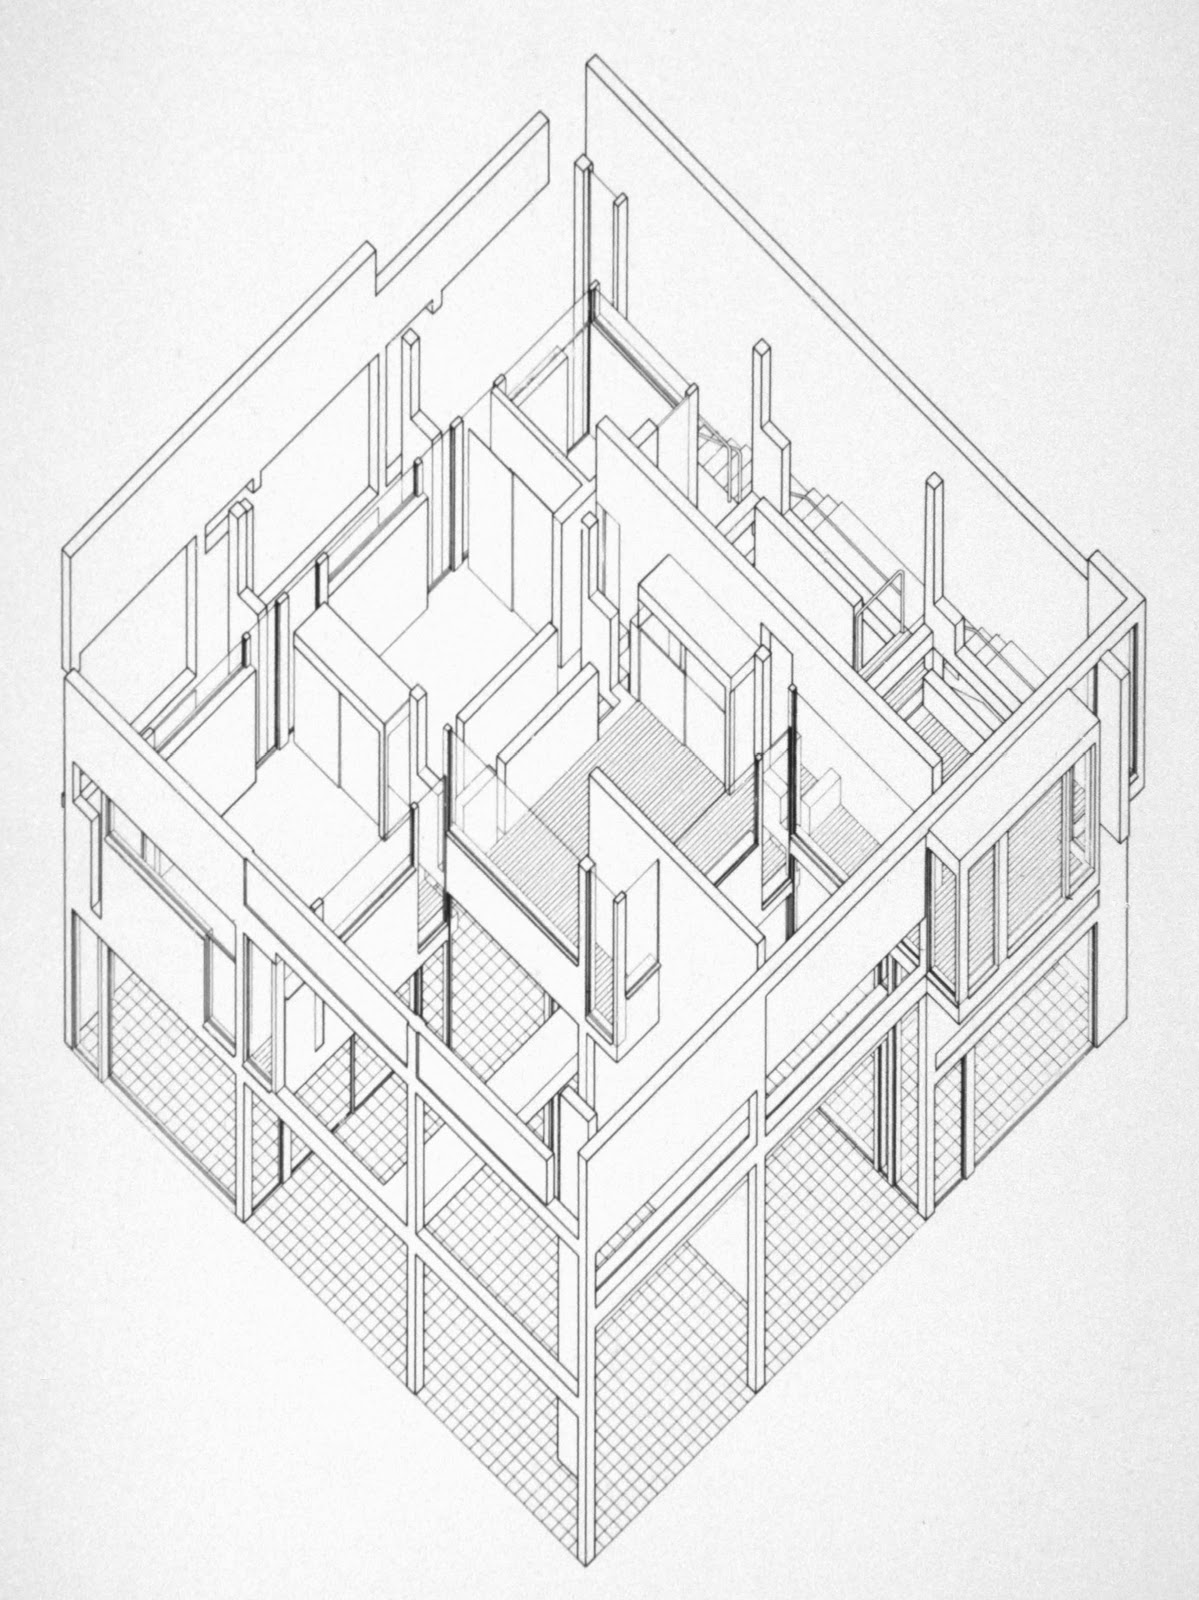 Architectural design spring 2011 for tuesday getting for Architecture 9 square grid